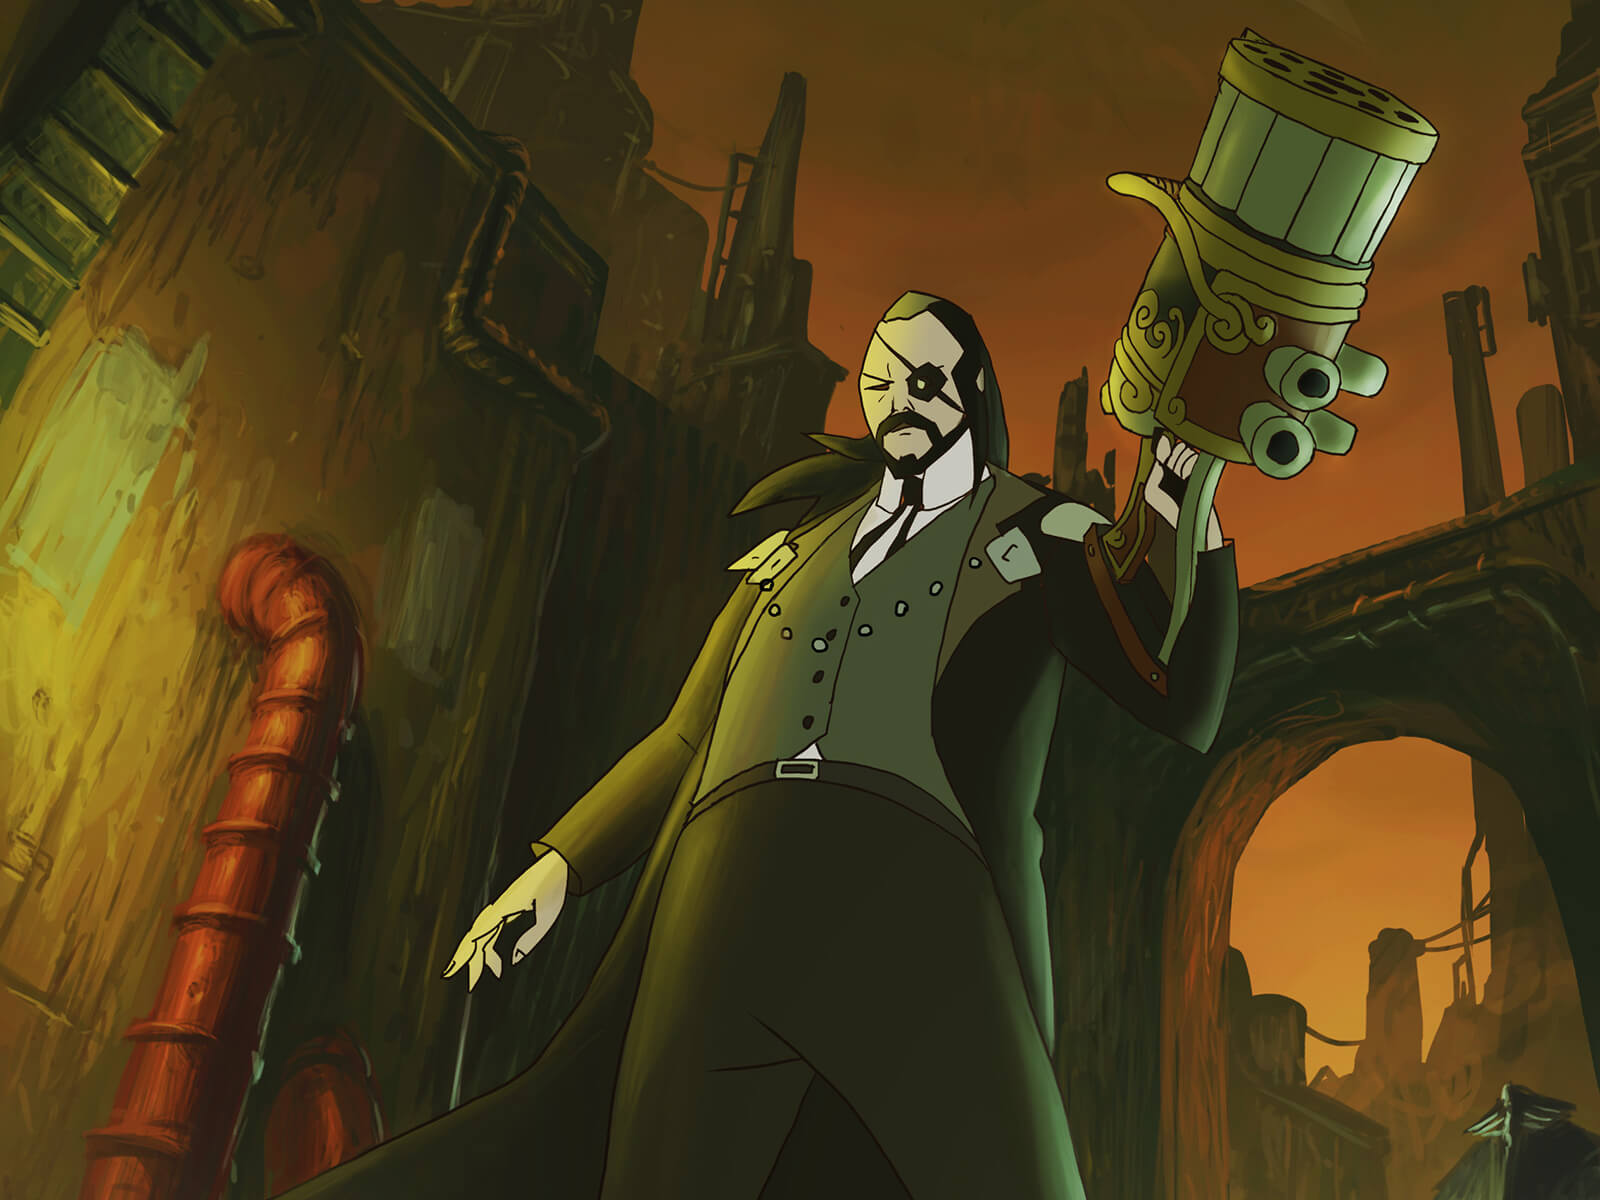 A man in an eye patch and steampunk garb stands in an industrial alleyway holding a large barrel-shaped weapon in one hand.